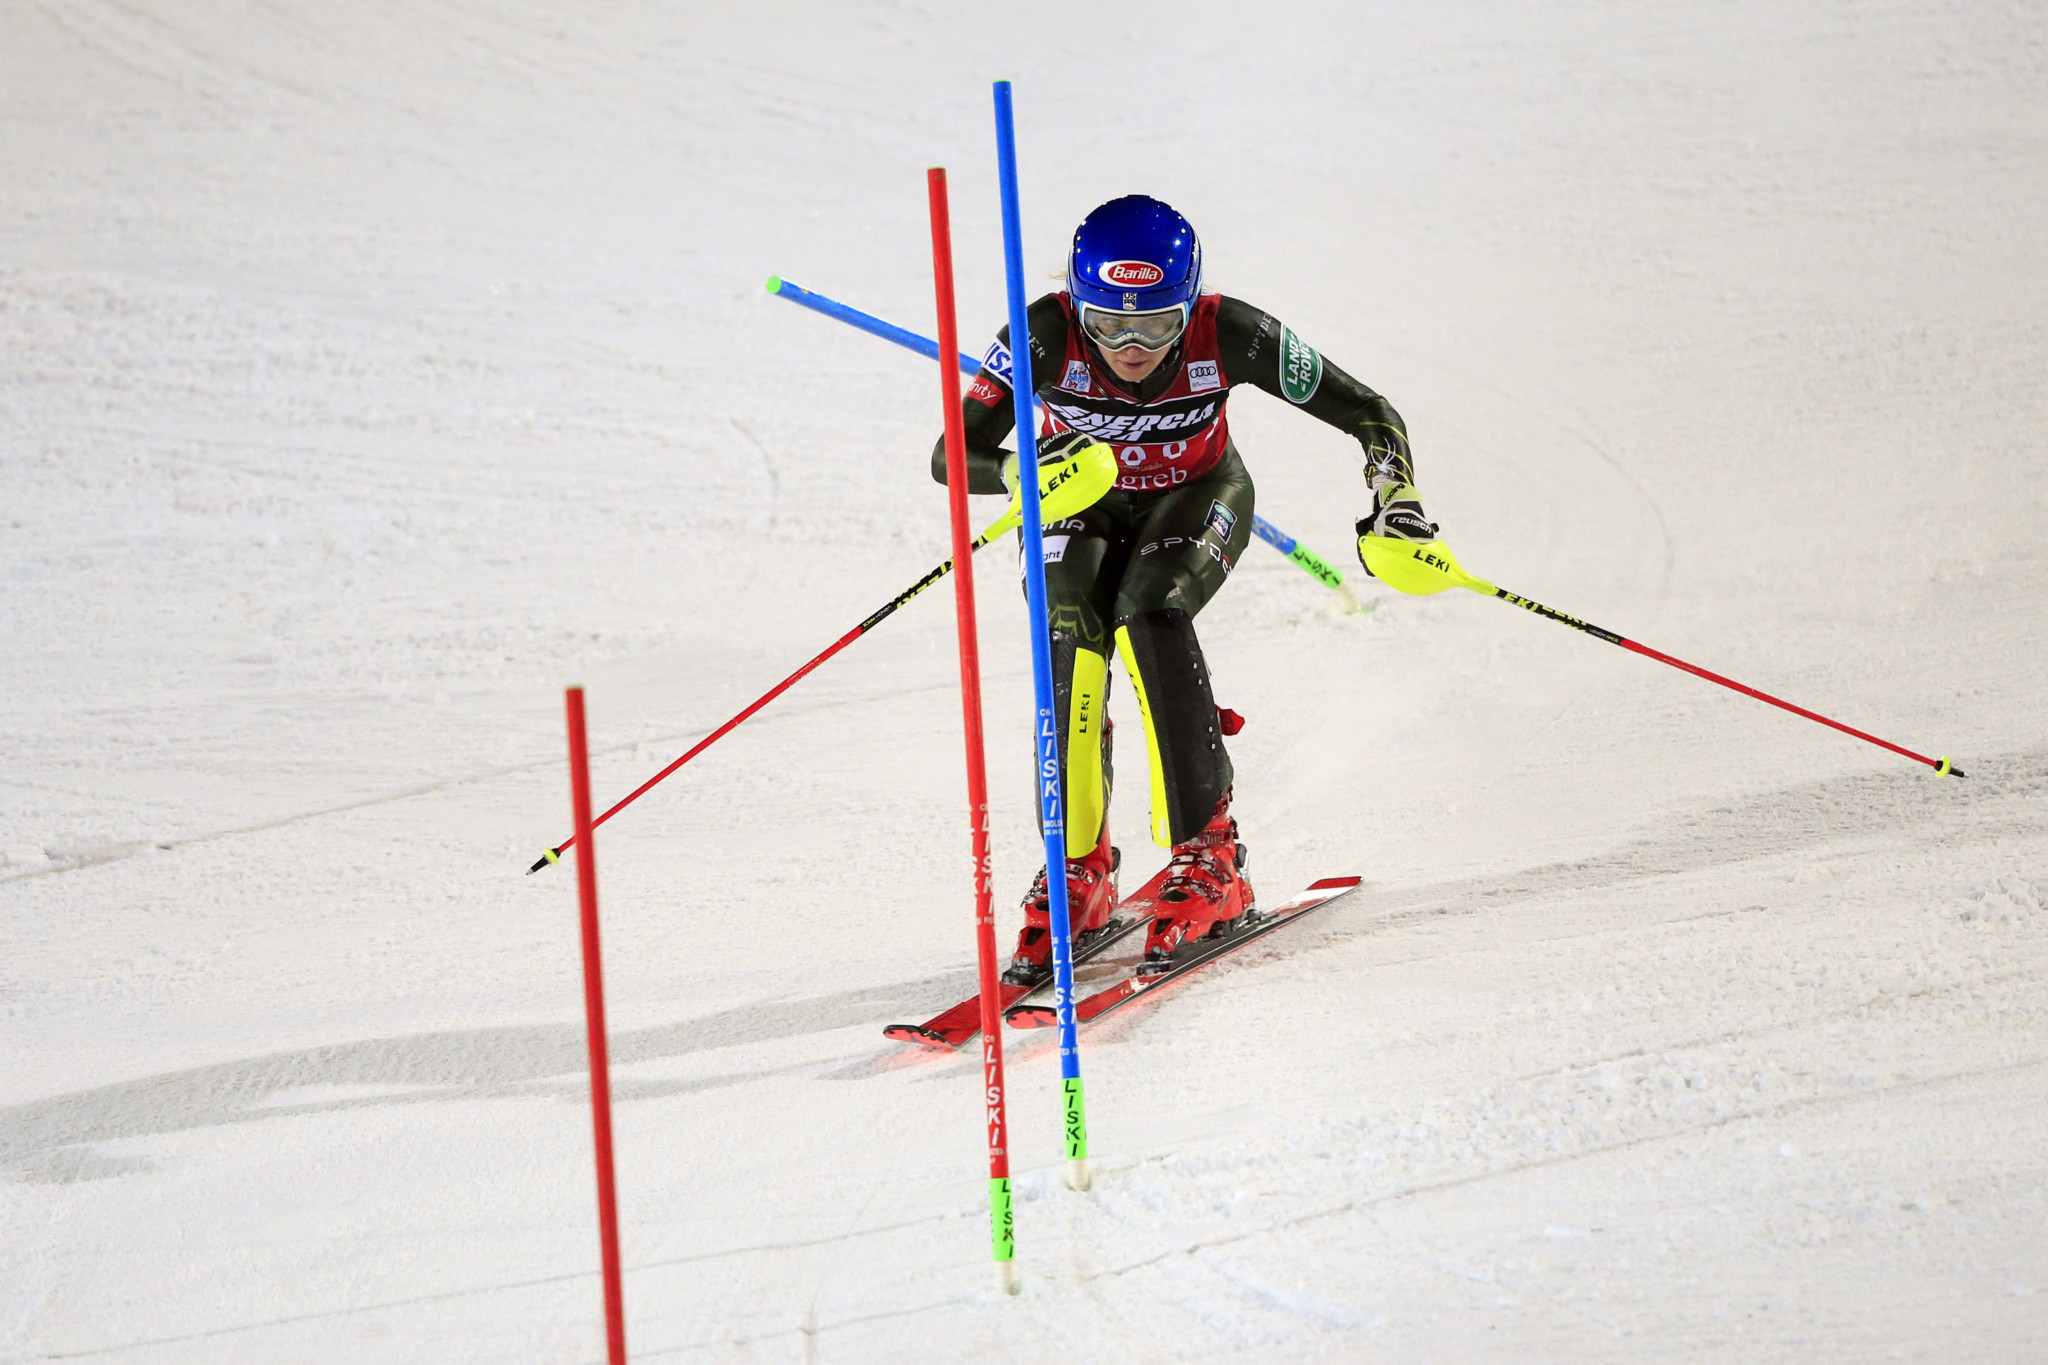 Mikaela Shiffrin was named female athlete of the month for December ©Getty Images